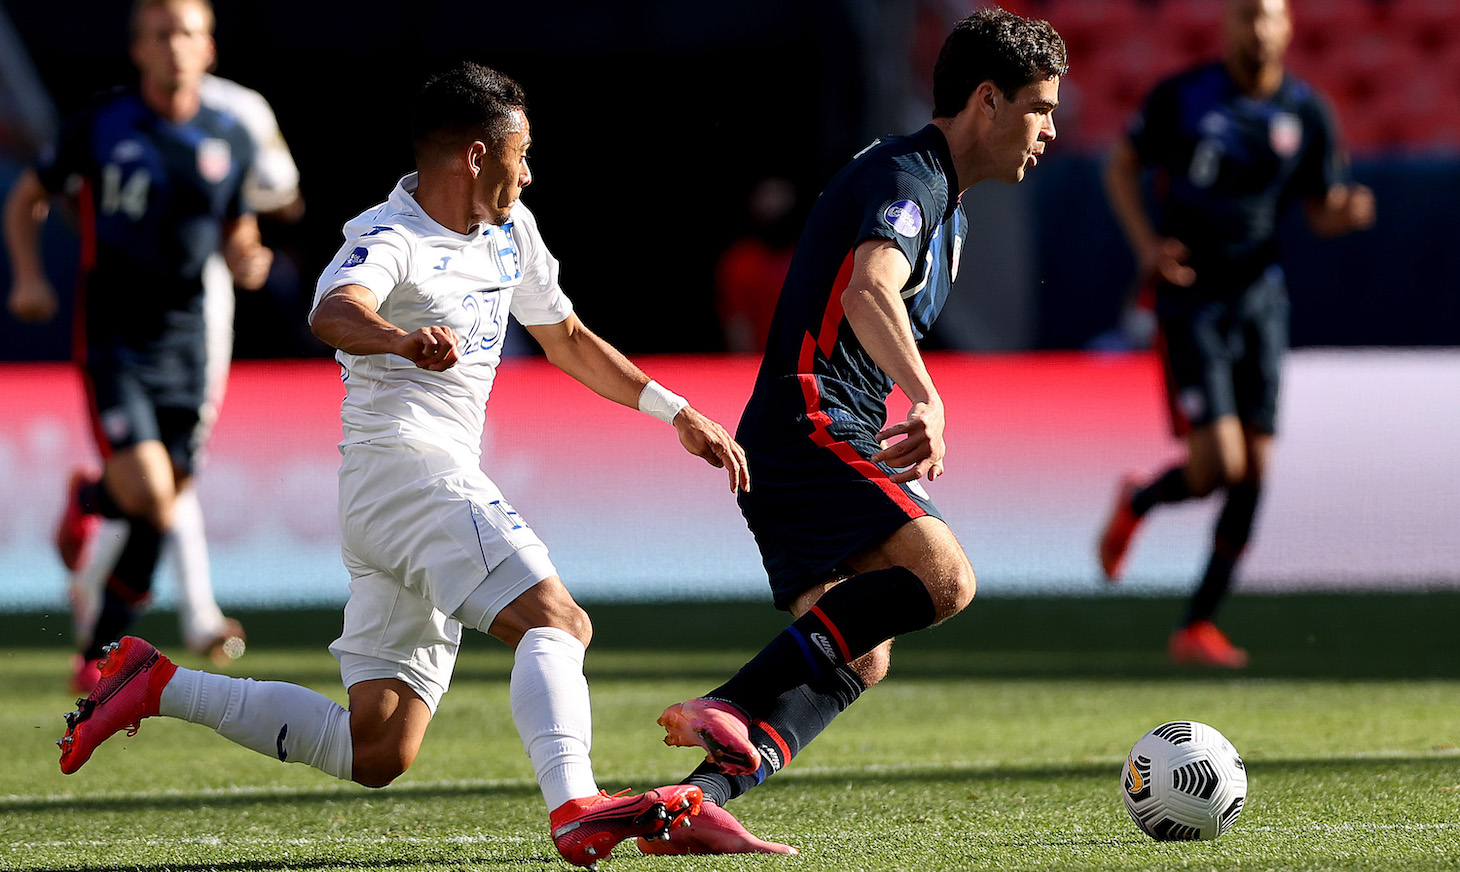 Gio Reyna #7 of USA advances the ball against Diego Rodriguez #23 of Honduras in the first half during Game 1 of the Semifinals of the CONCACAF Nations League Finals of at Empower Field At Mile High on June 03, 2021 in Denver, Colorado.